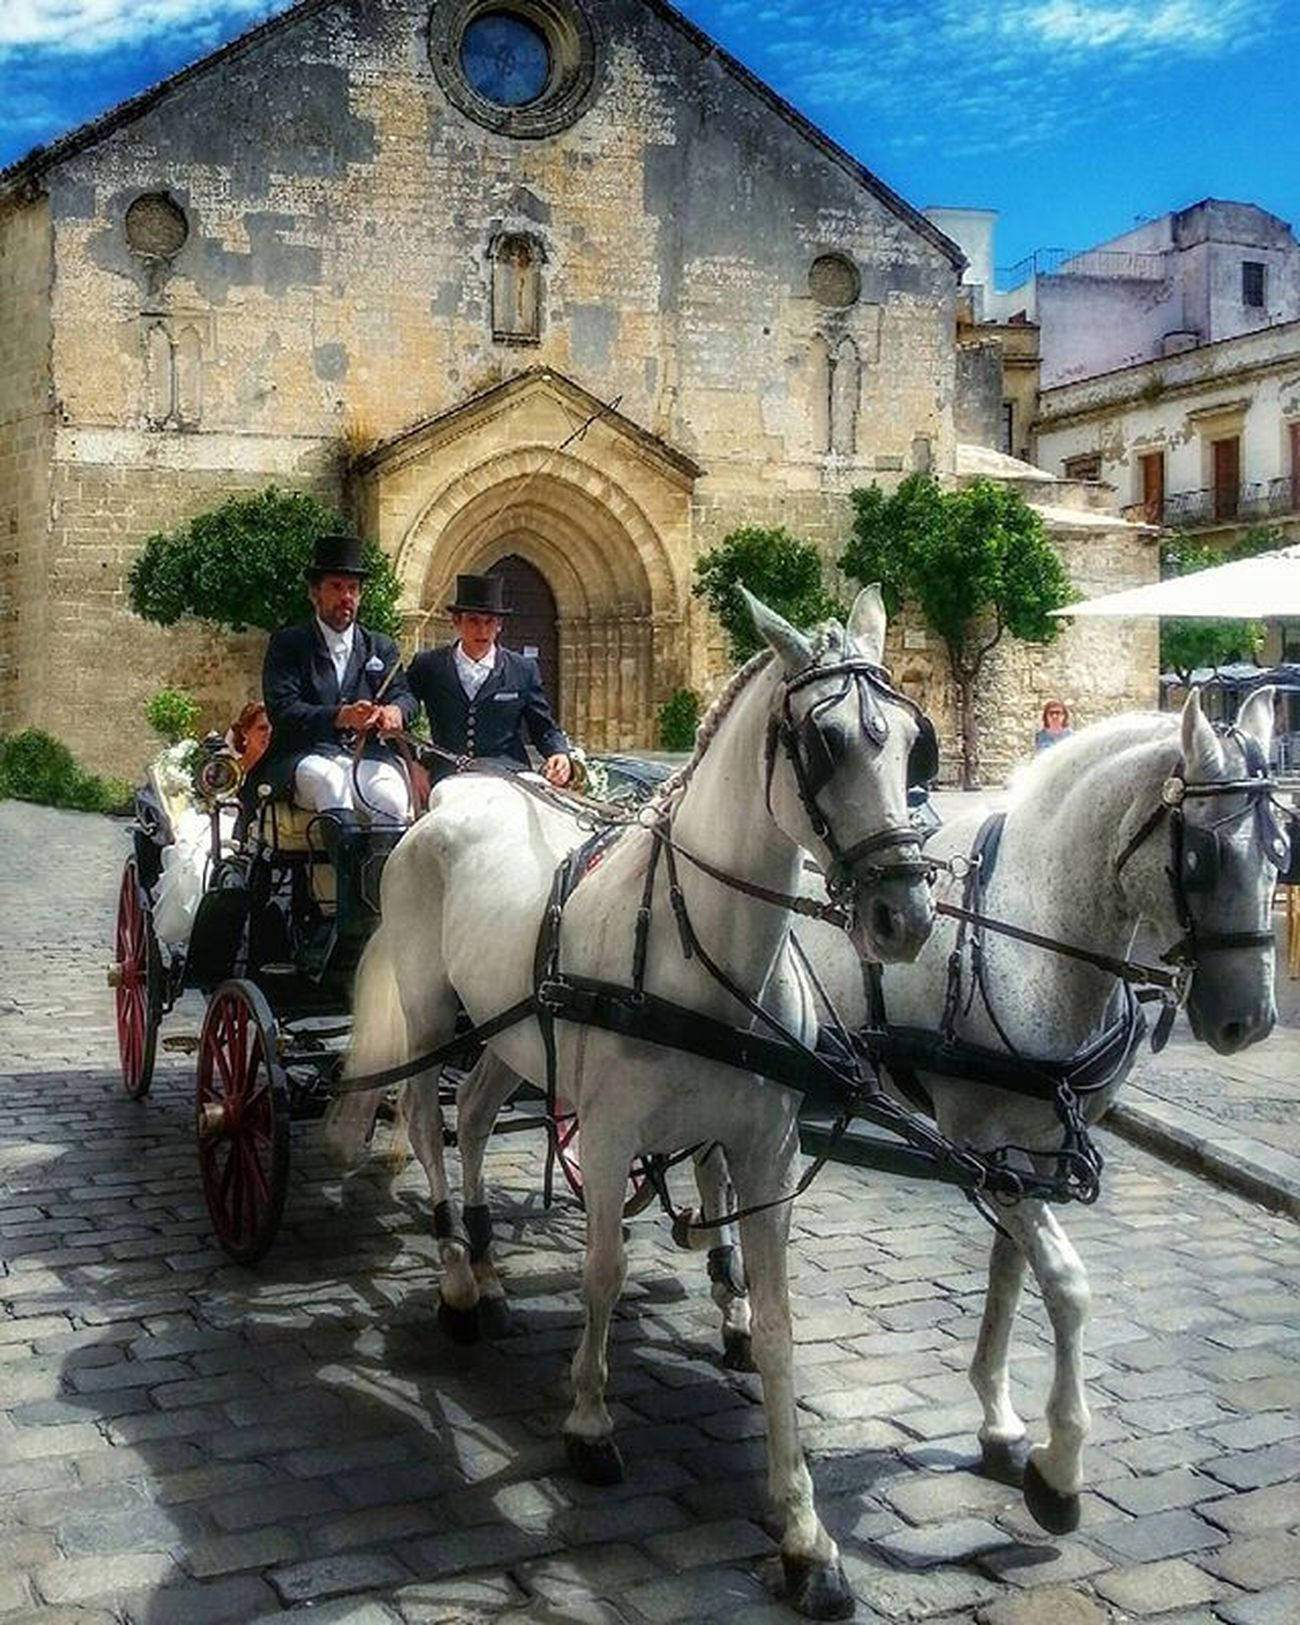 Jerez, capital del caballo. El caballo es el símbolo más representativo de Jerez junto con sus famosos vinos. ************************************************** Turismojerez Hdr_pics Hdr_lovers Great_captures_HDR Frameable Collection_hdr Ok_spain Hdr_captures Love_hdr_colour Hdr_spain Roadwarrior_hdr Estaes_cadiz IG_HDR_DREAMS Descubriendoigers Todoclick Ok_hdr Andaluciaviva Andalucia_monumental IG_andalucia Loves_cadiz Hdr_proffesional Ig_great_pics Asiesandalucia Your_worldcaptures Insta_world_free coolworld_hdr match_hdr hdr_reflex ilove_hdr turismoeuropa